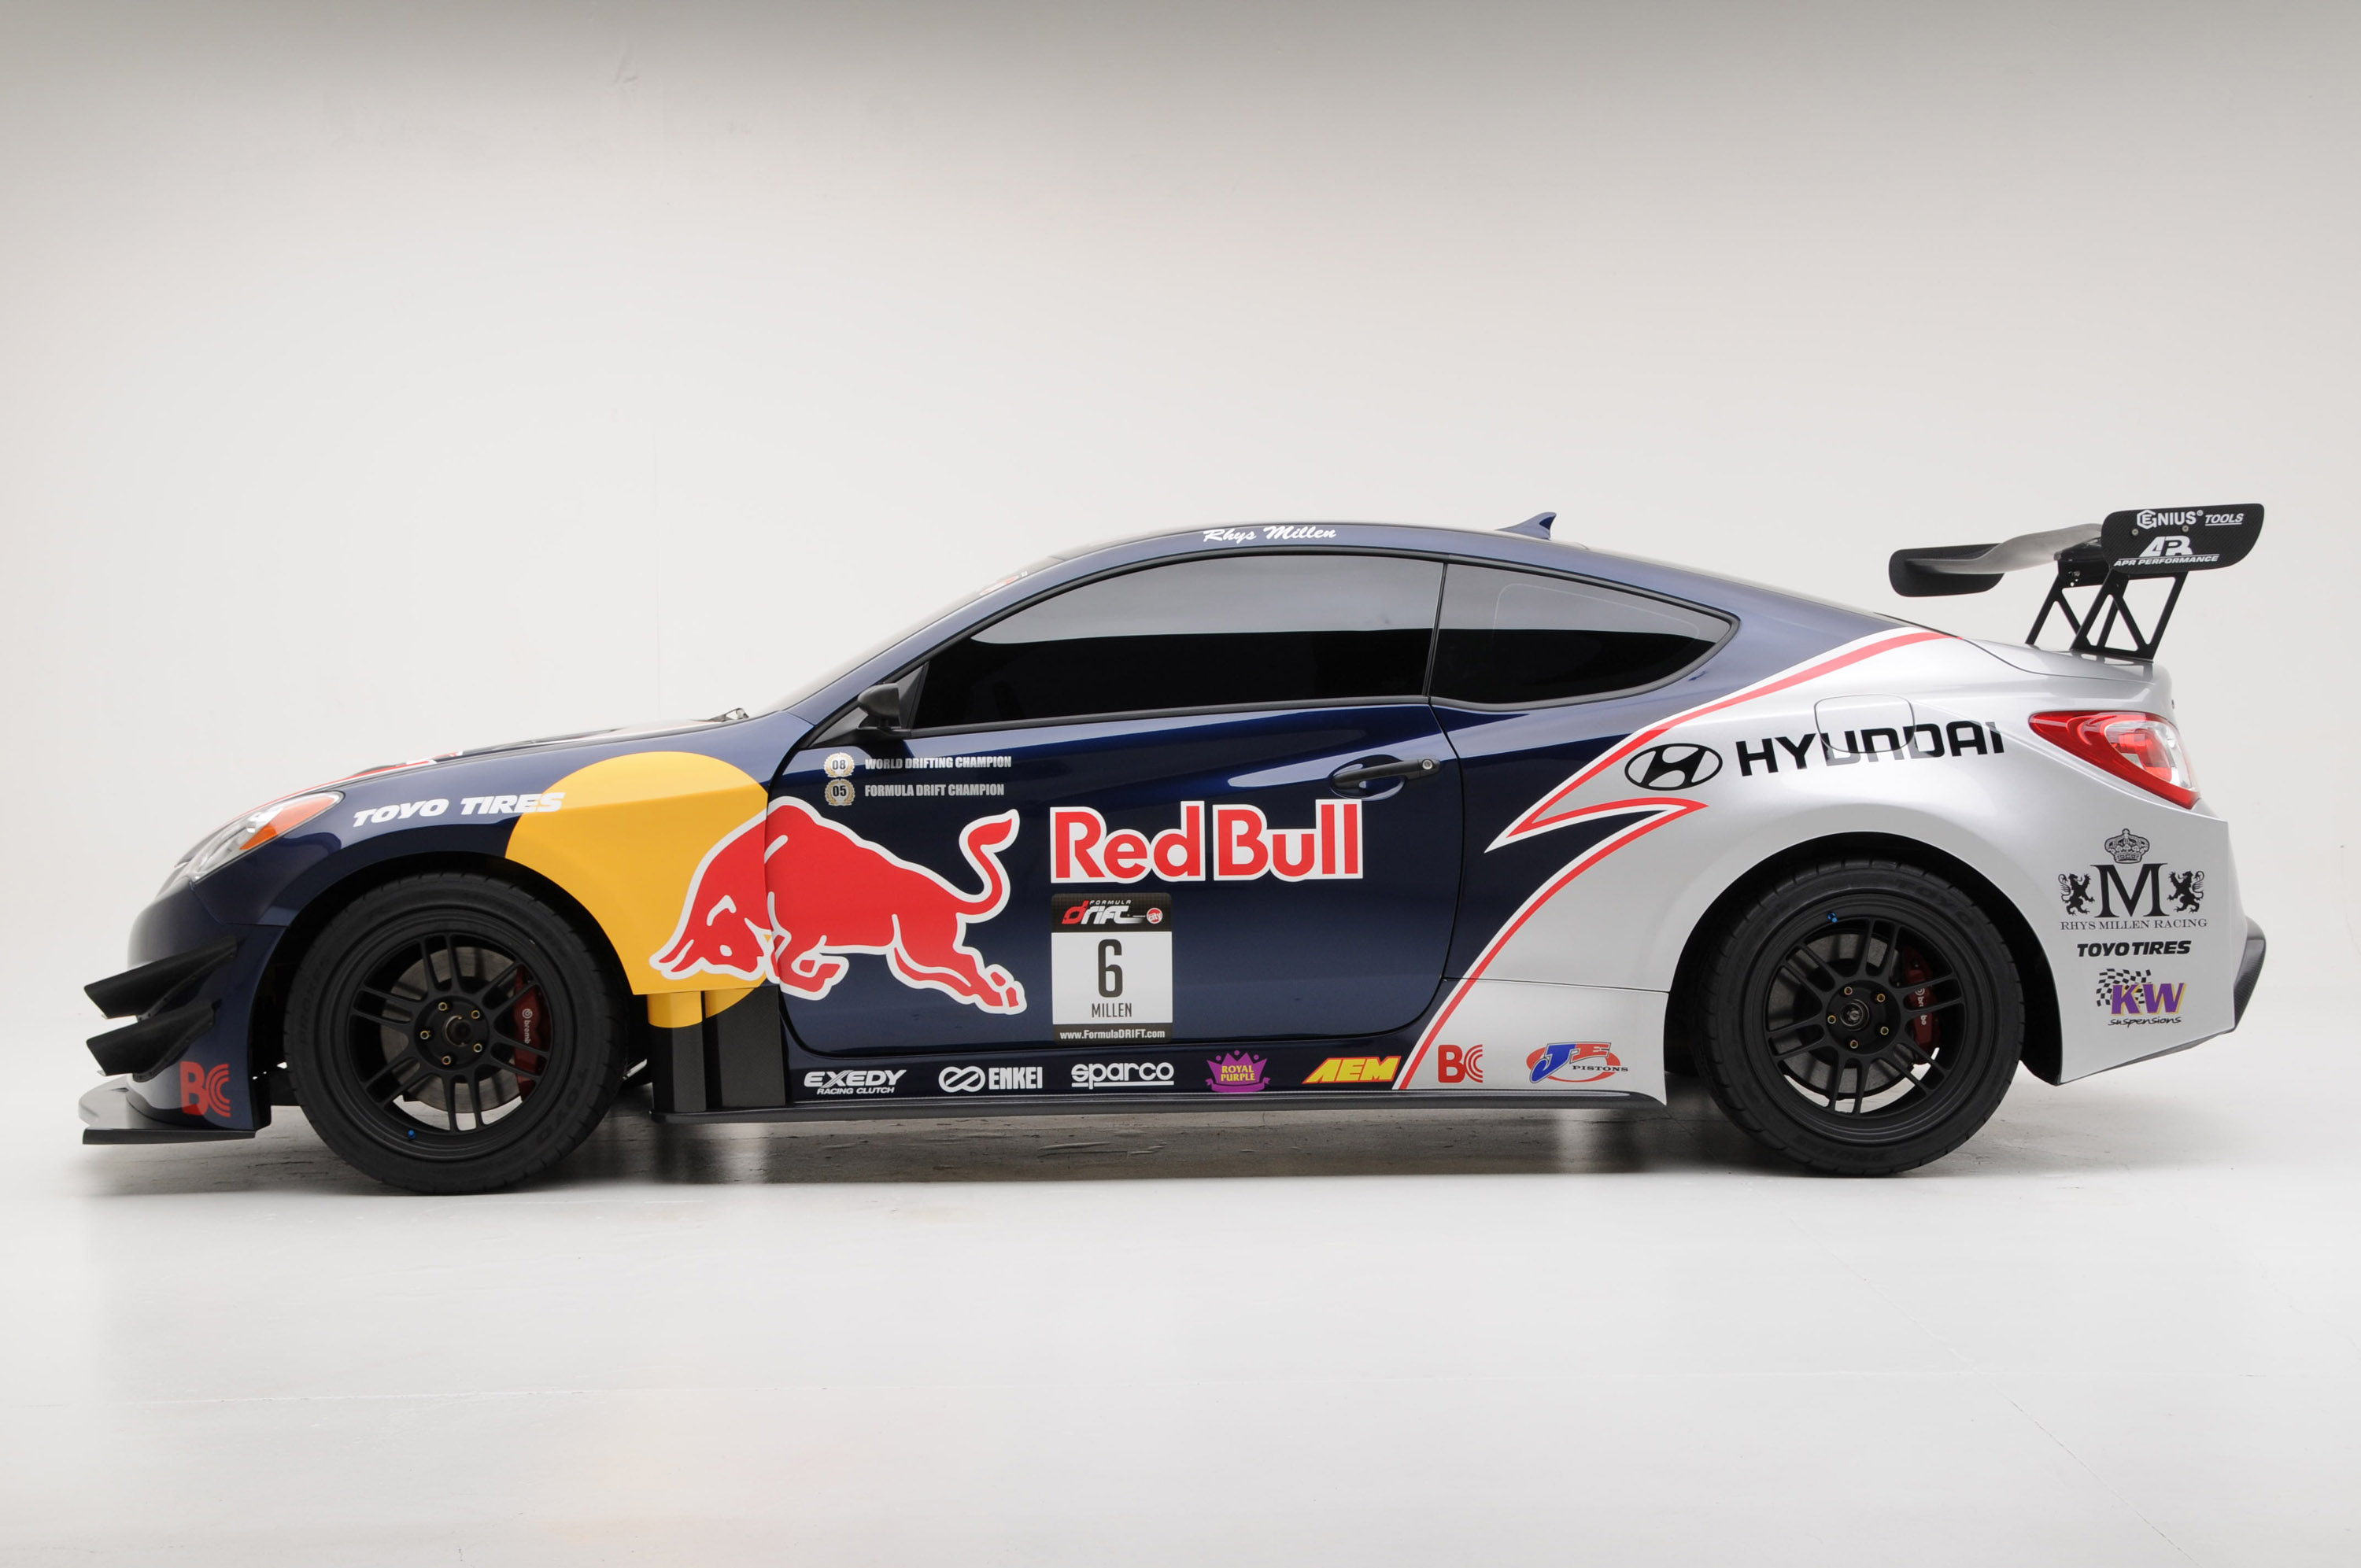 Hyundai Rmr Red Bull Genesis Coupe Picture 12938